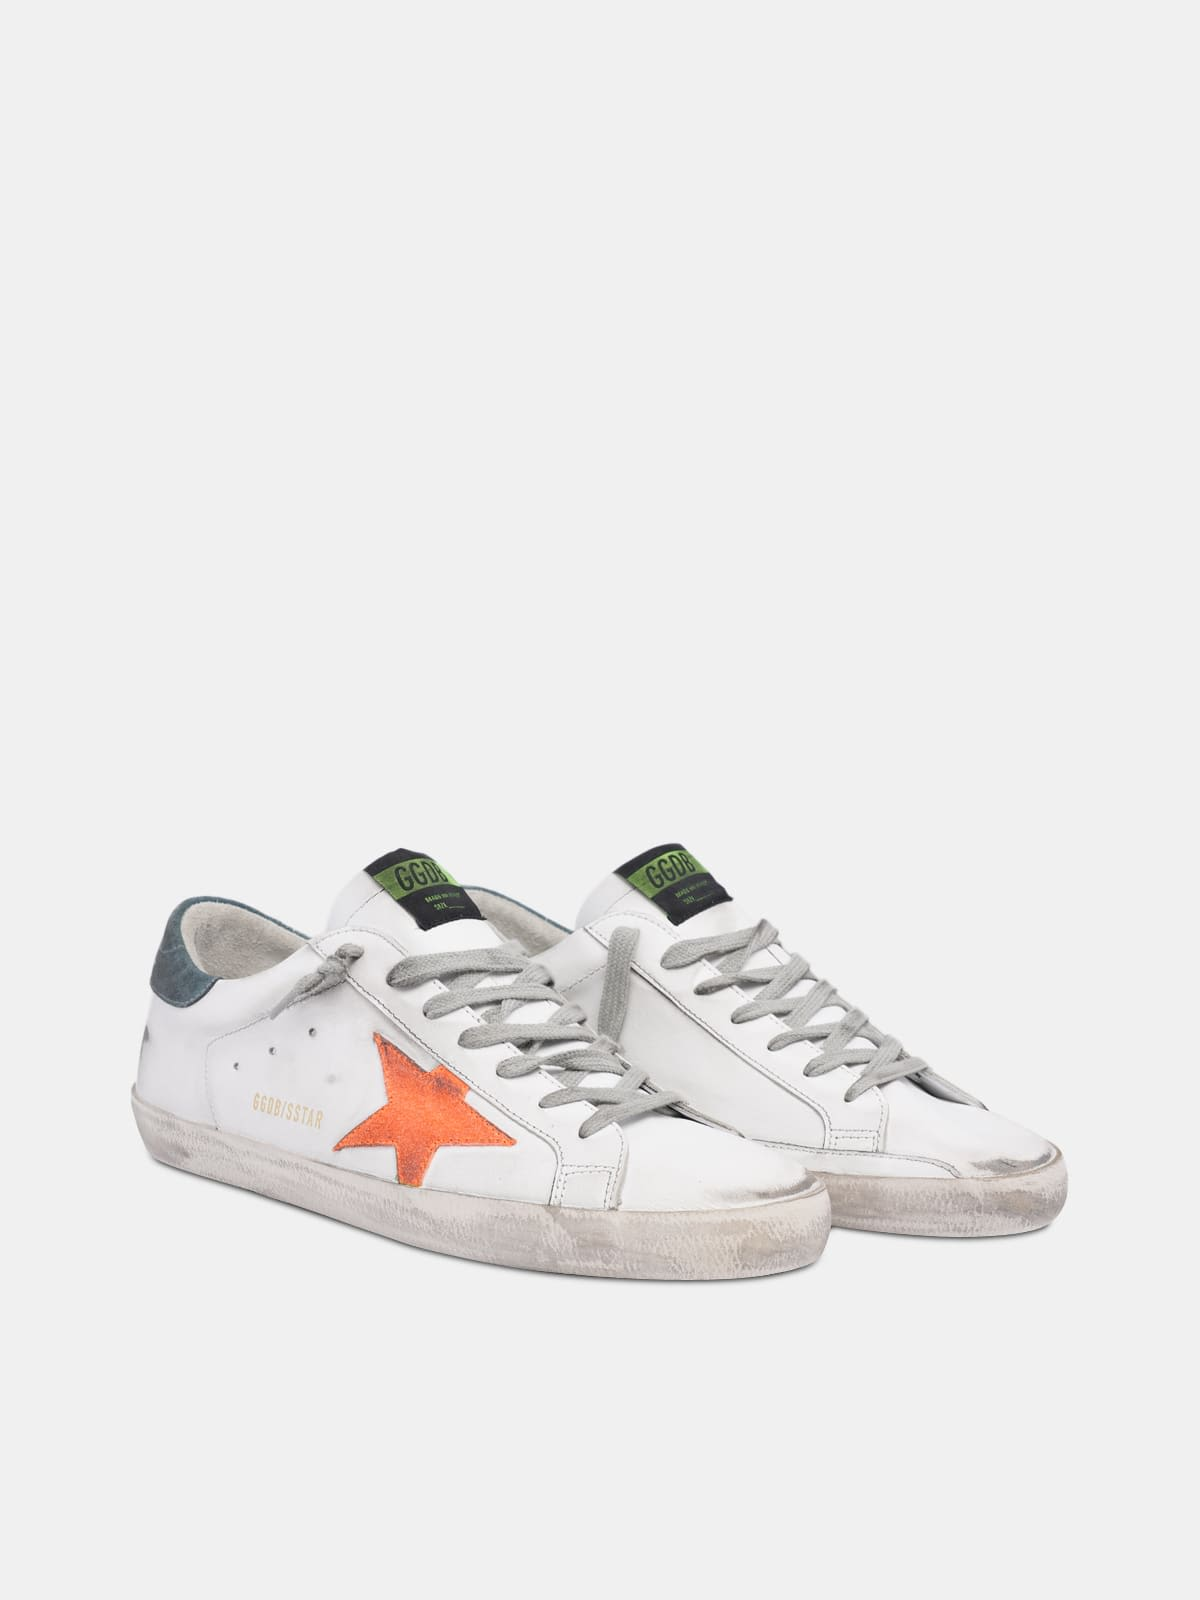 White Super-Star sneakers with orange star